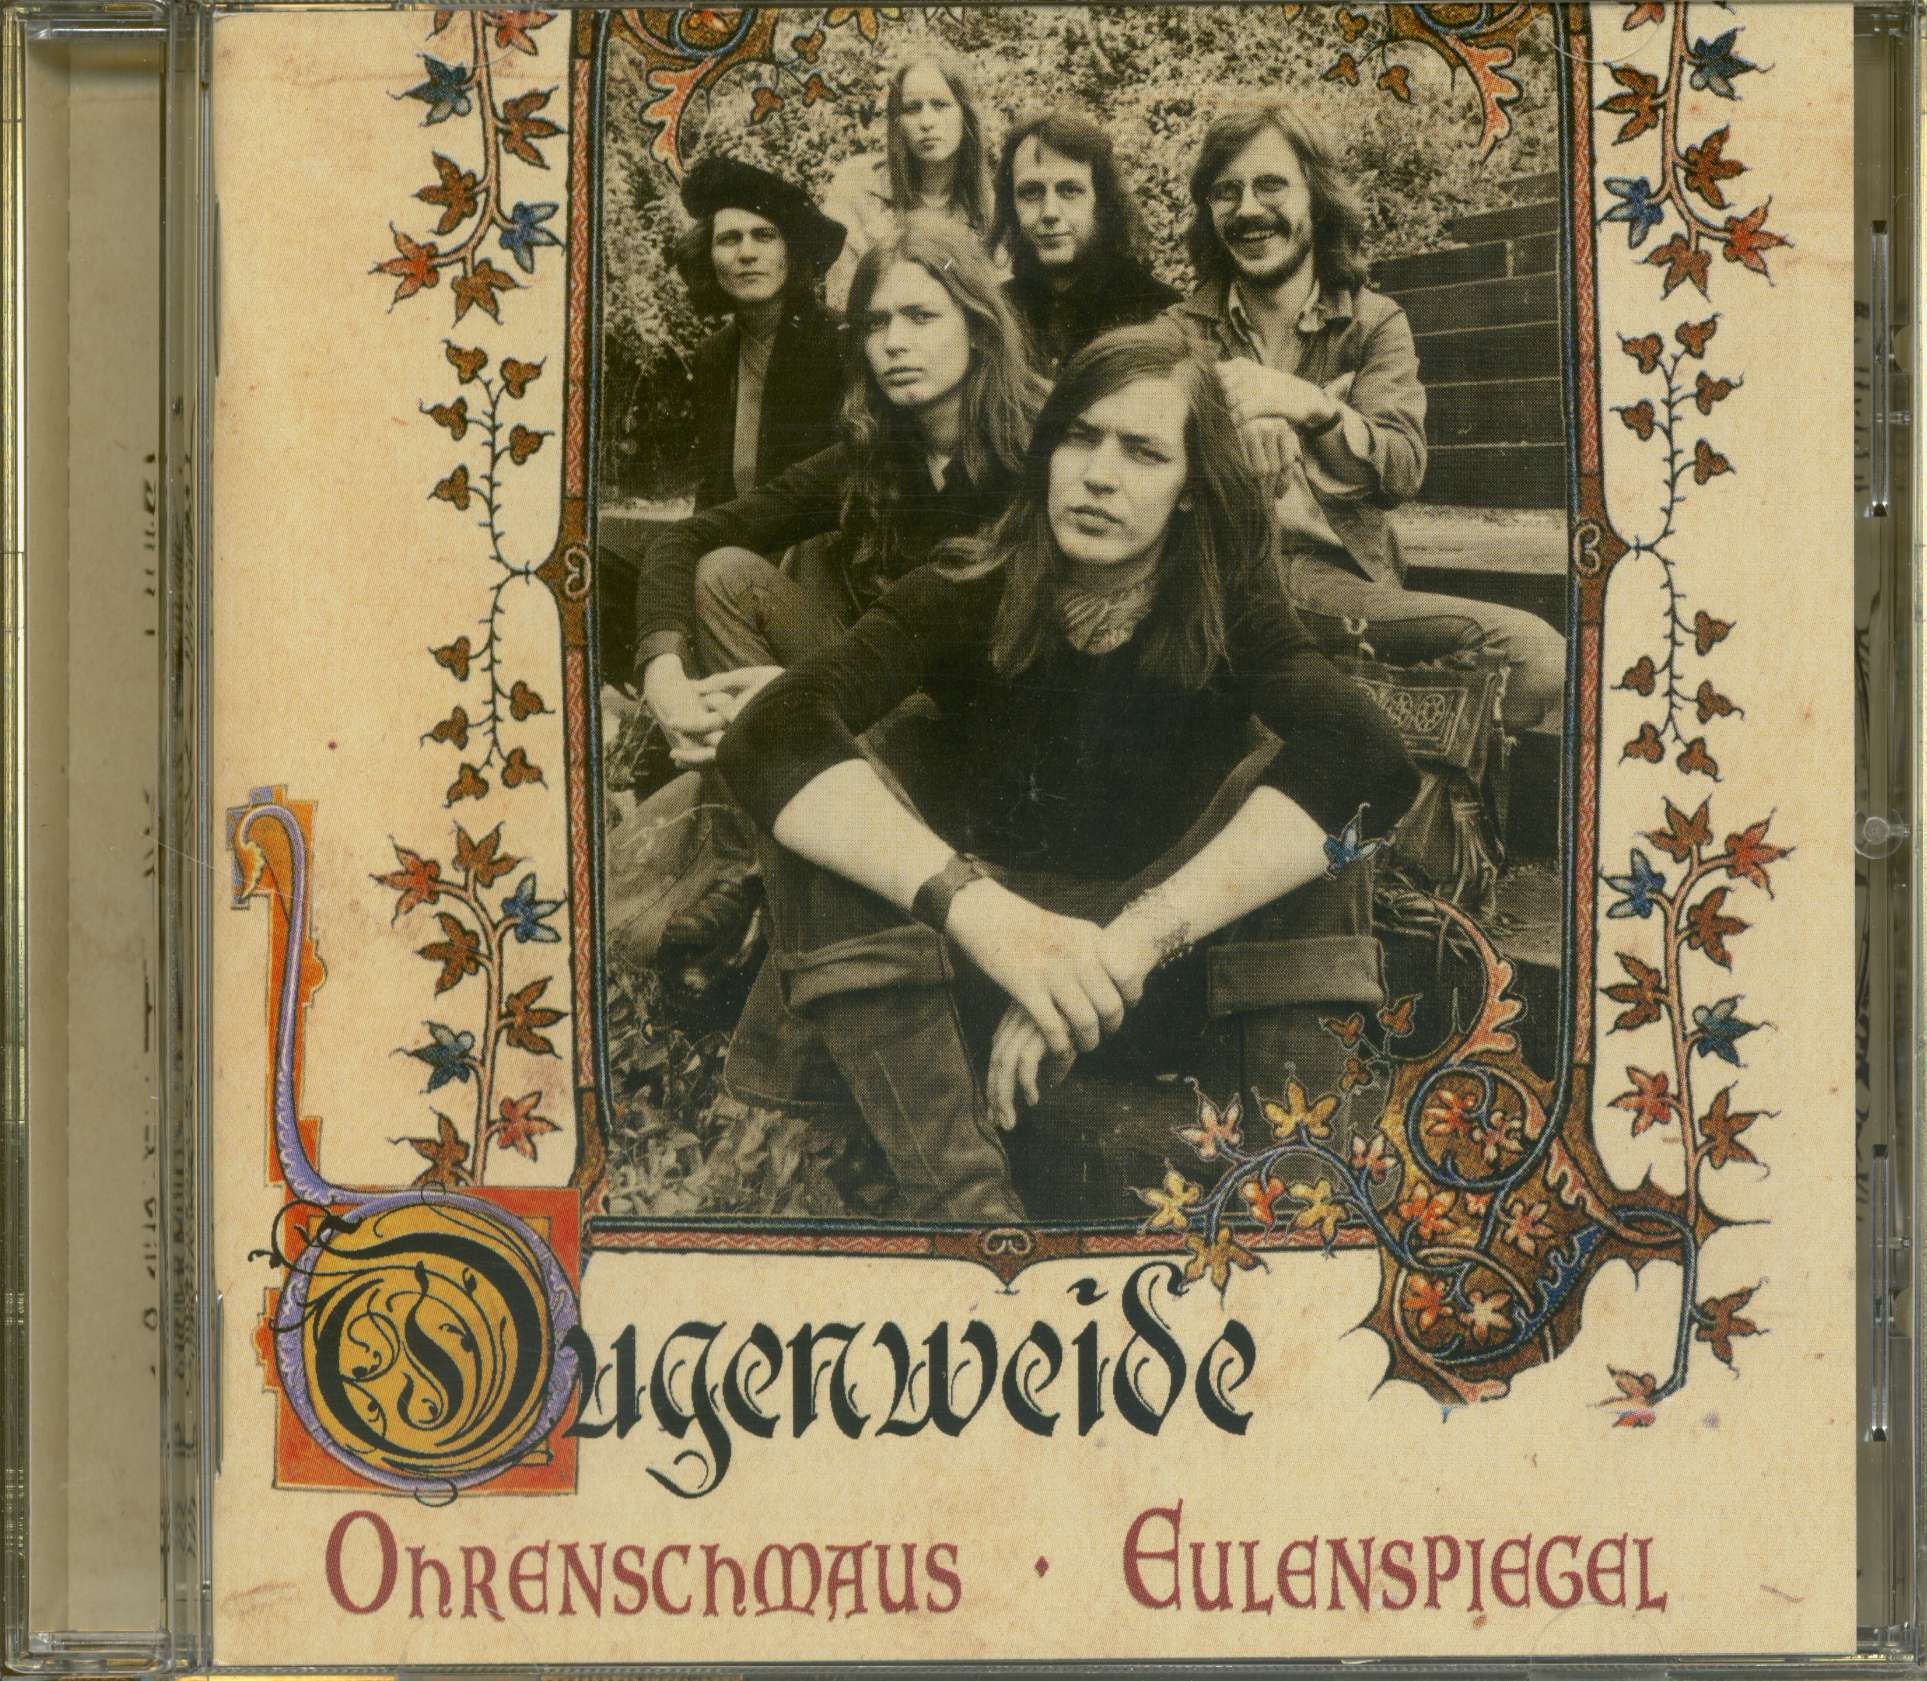 ougenweide discography